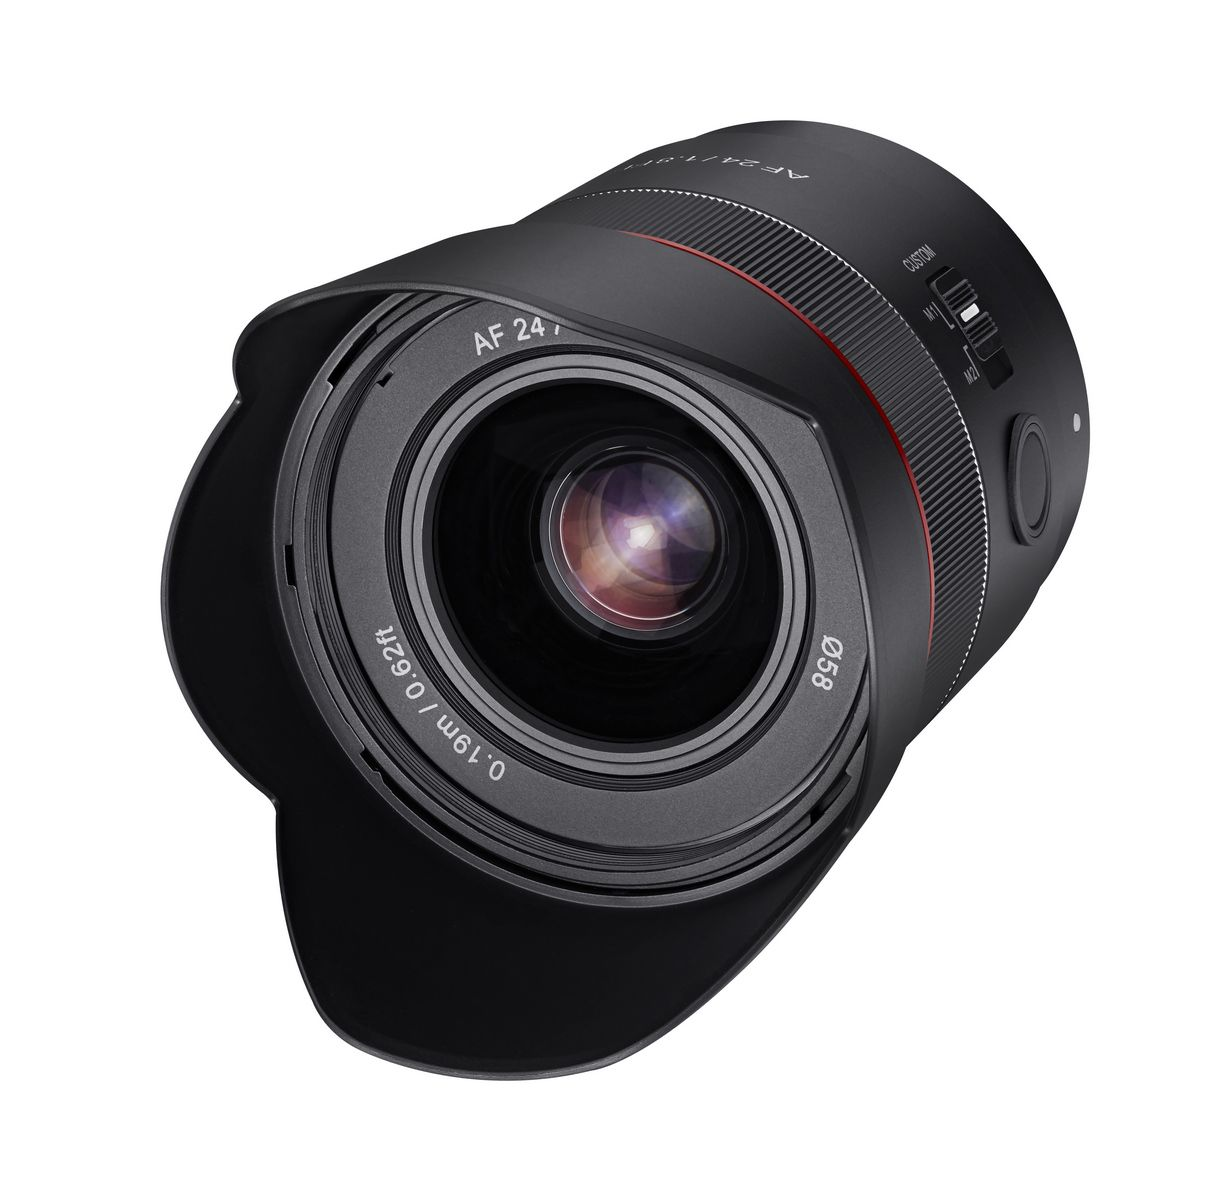 Objectif Samyang 24mm f / 1.8 AF Compact pour Sony E